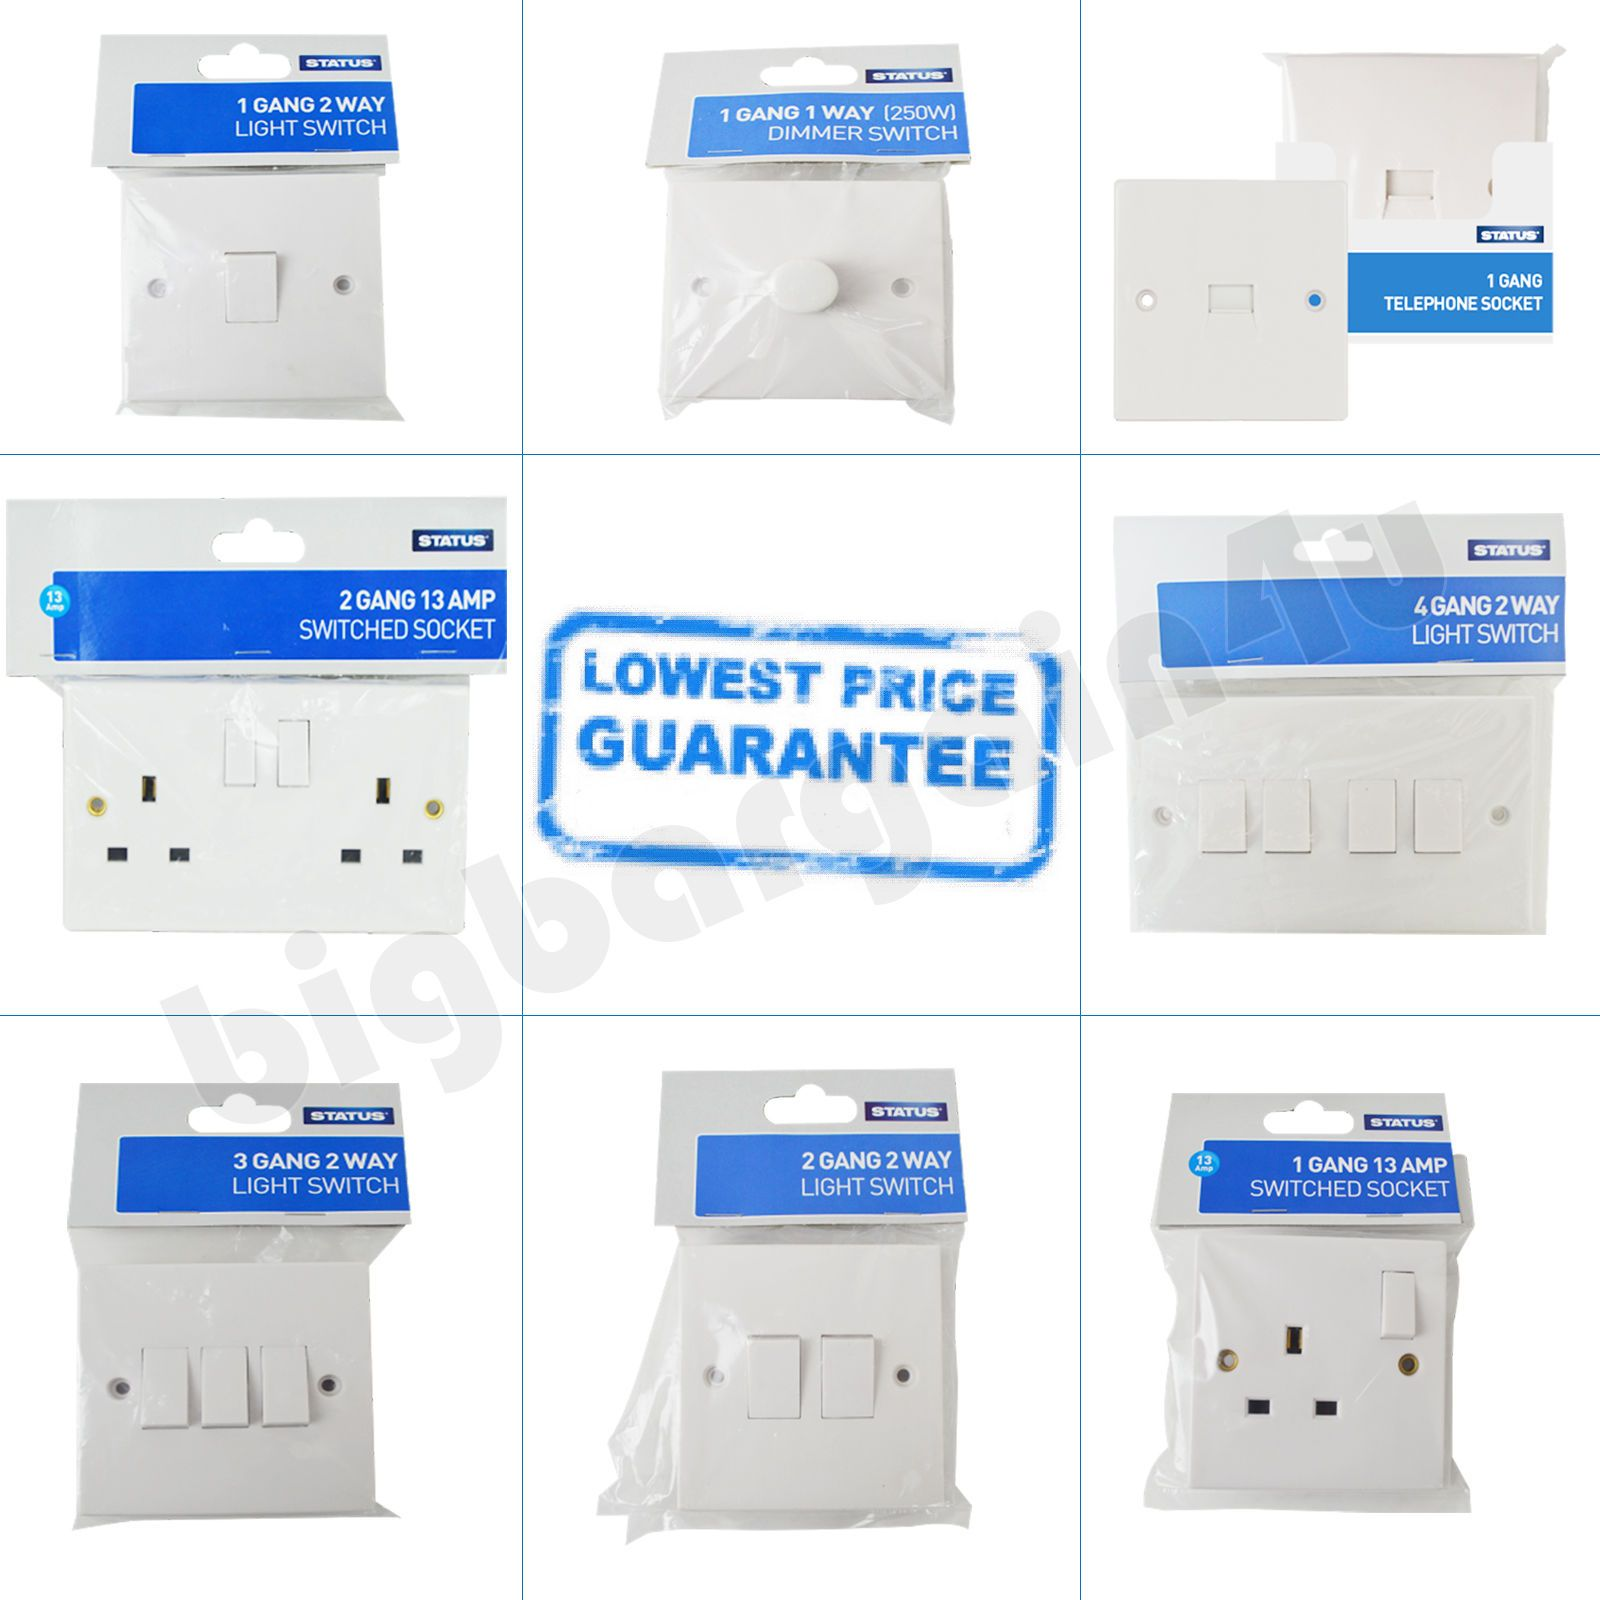 1 2 Way 3 4 Gang Light Switches Plug Telephone Sockets Dimmer Switch White